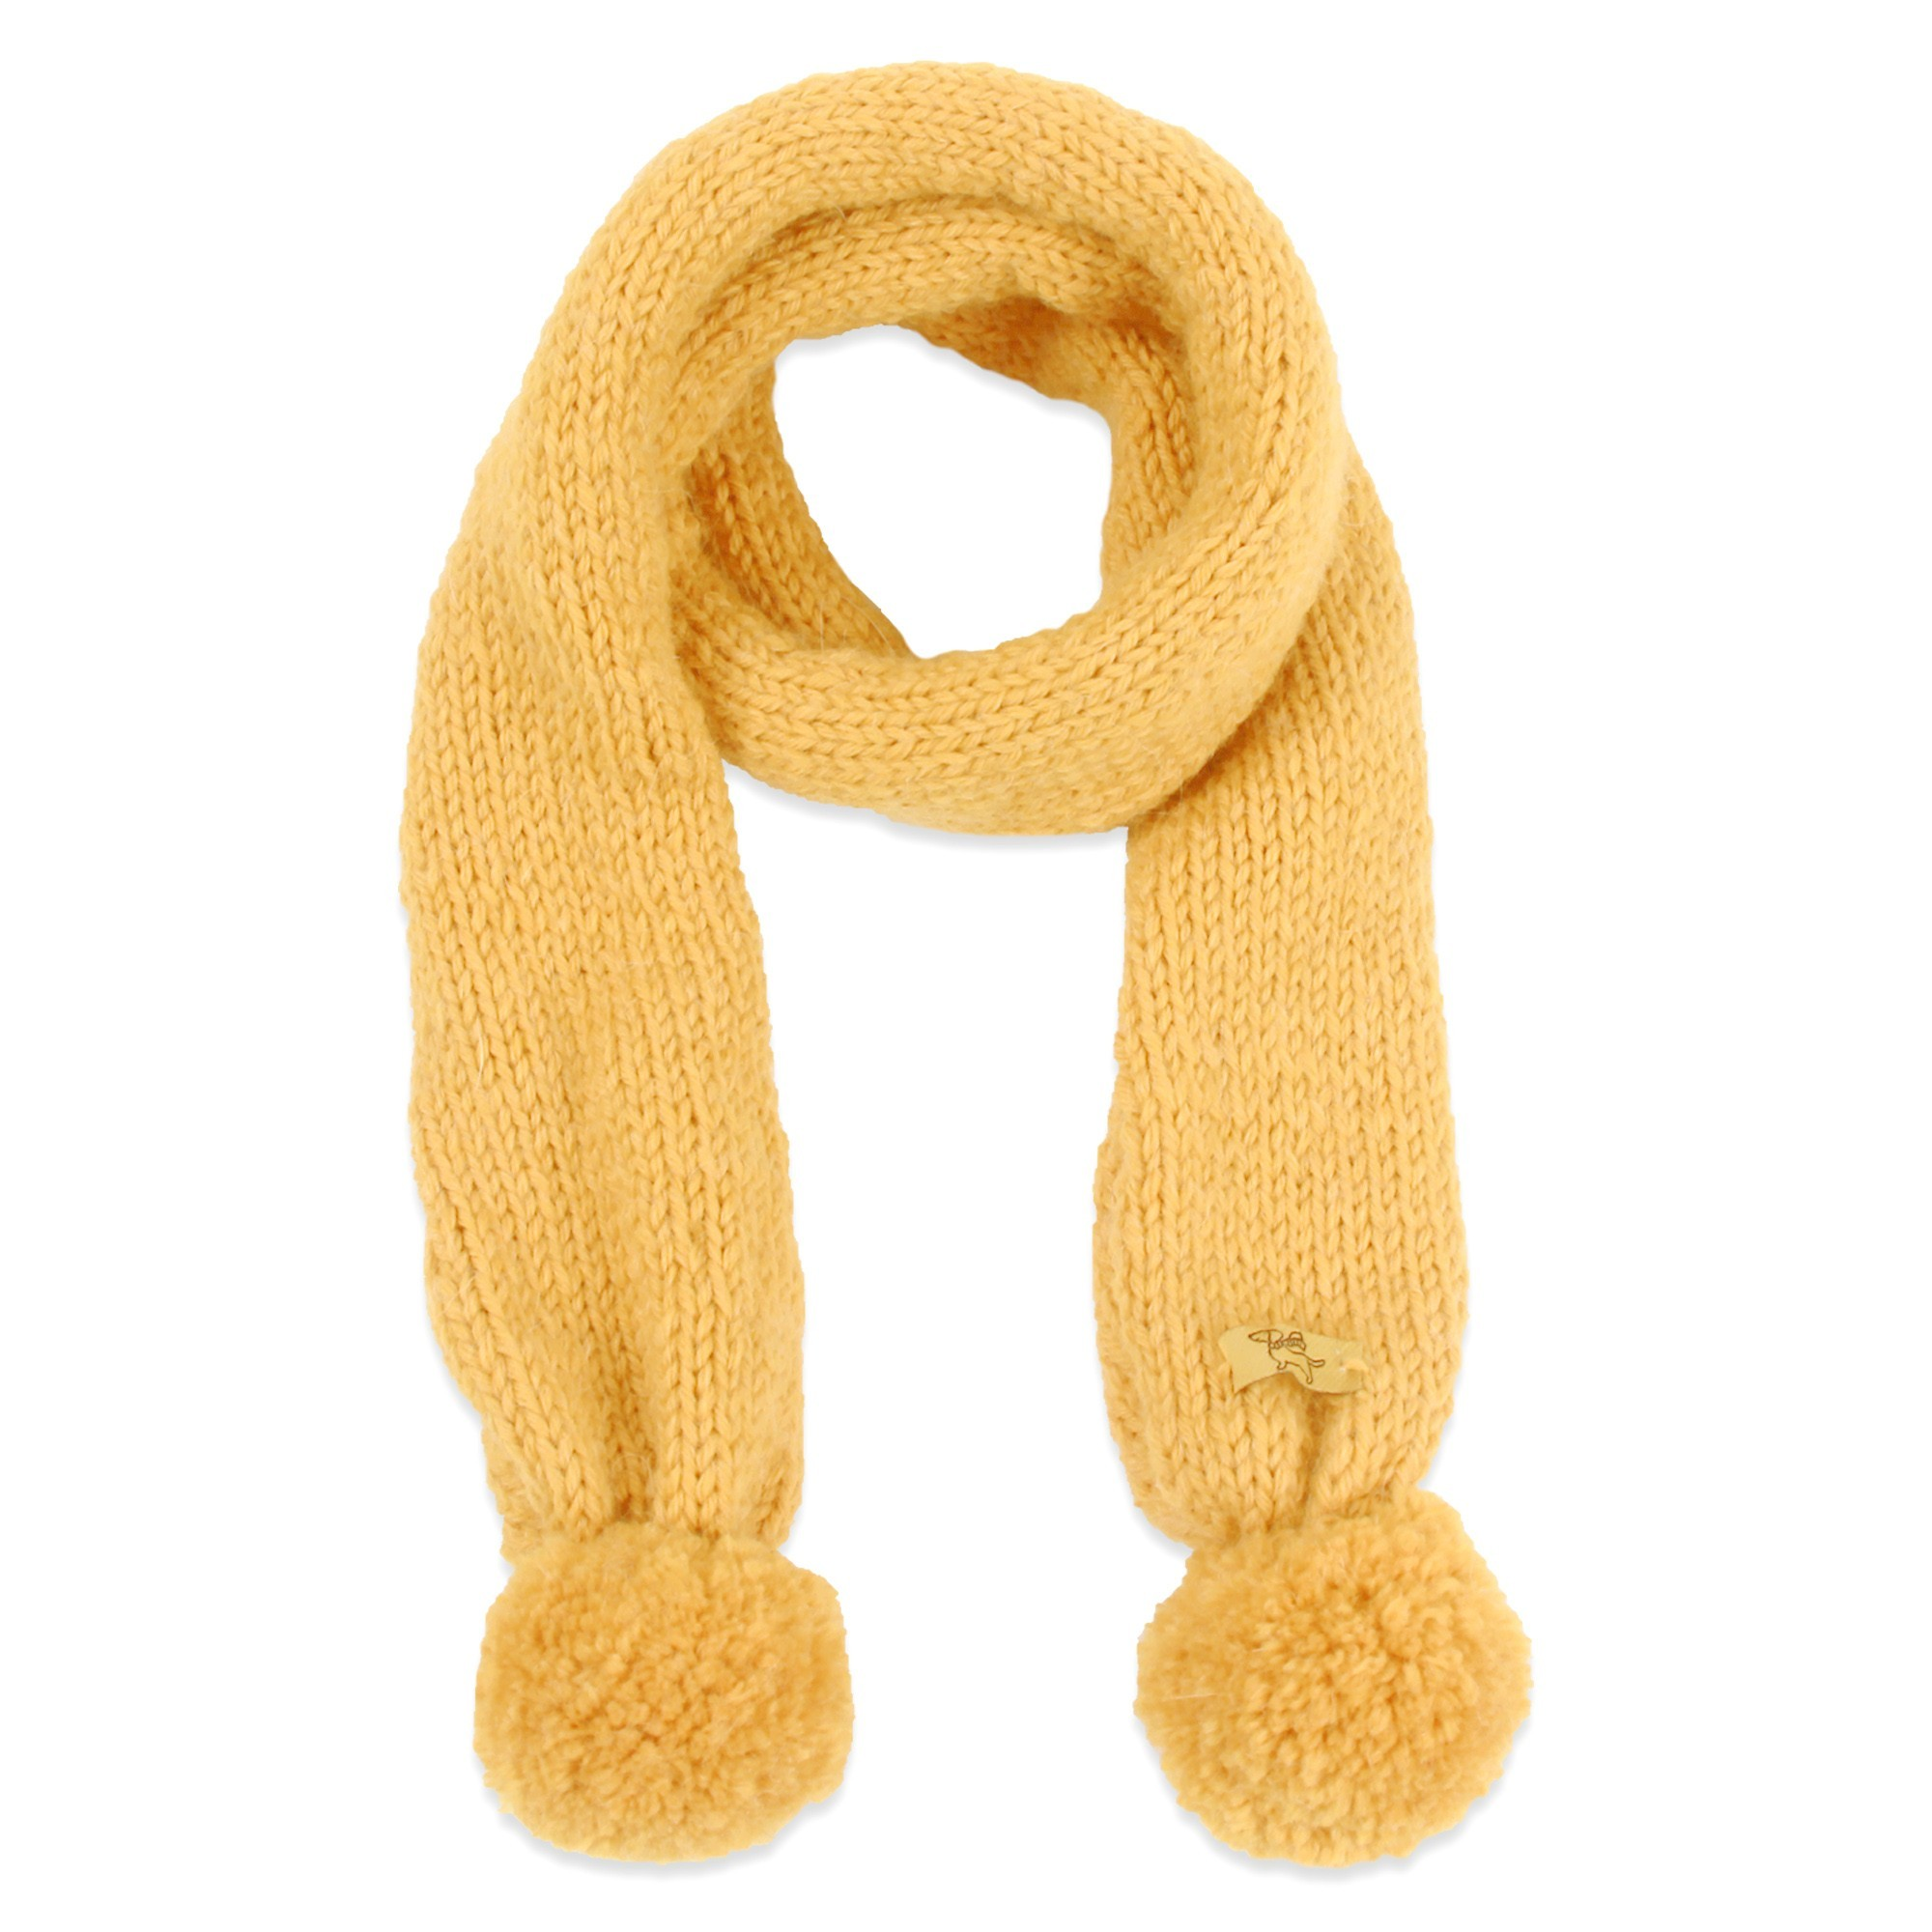 Granny s knitwear yellow colors baby scarf made from wool amp alpaca